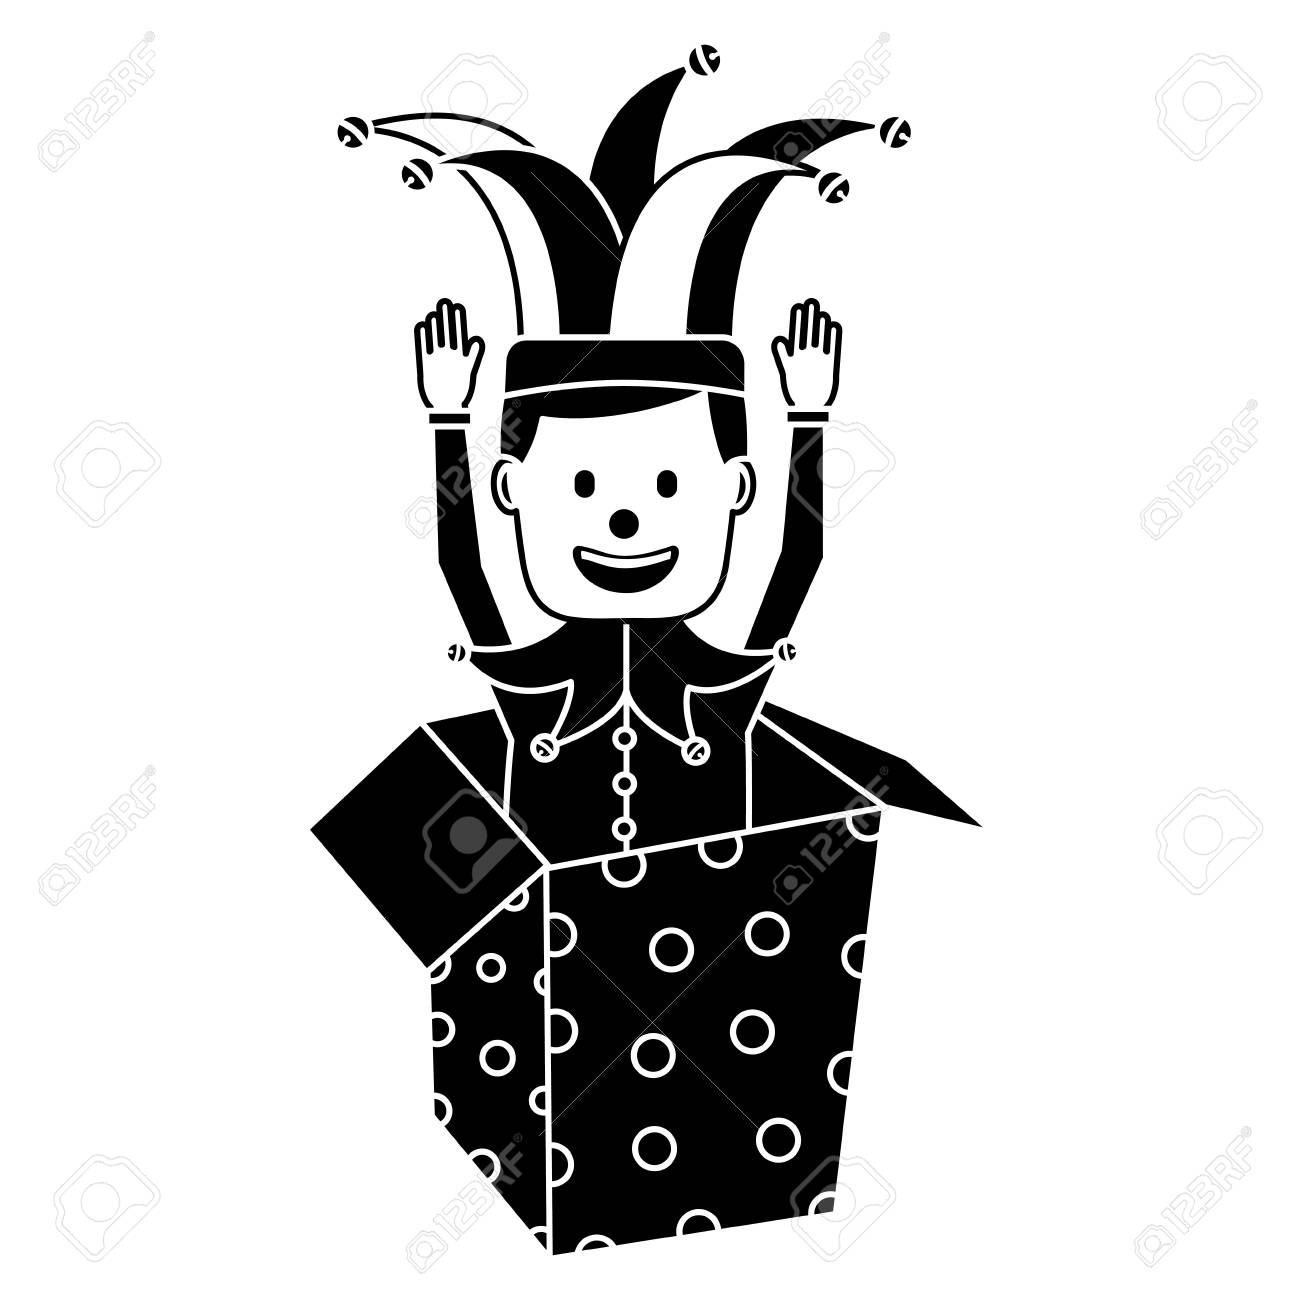 Joker with clown mask in the box prank hands up fools vector illustration black and white